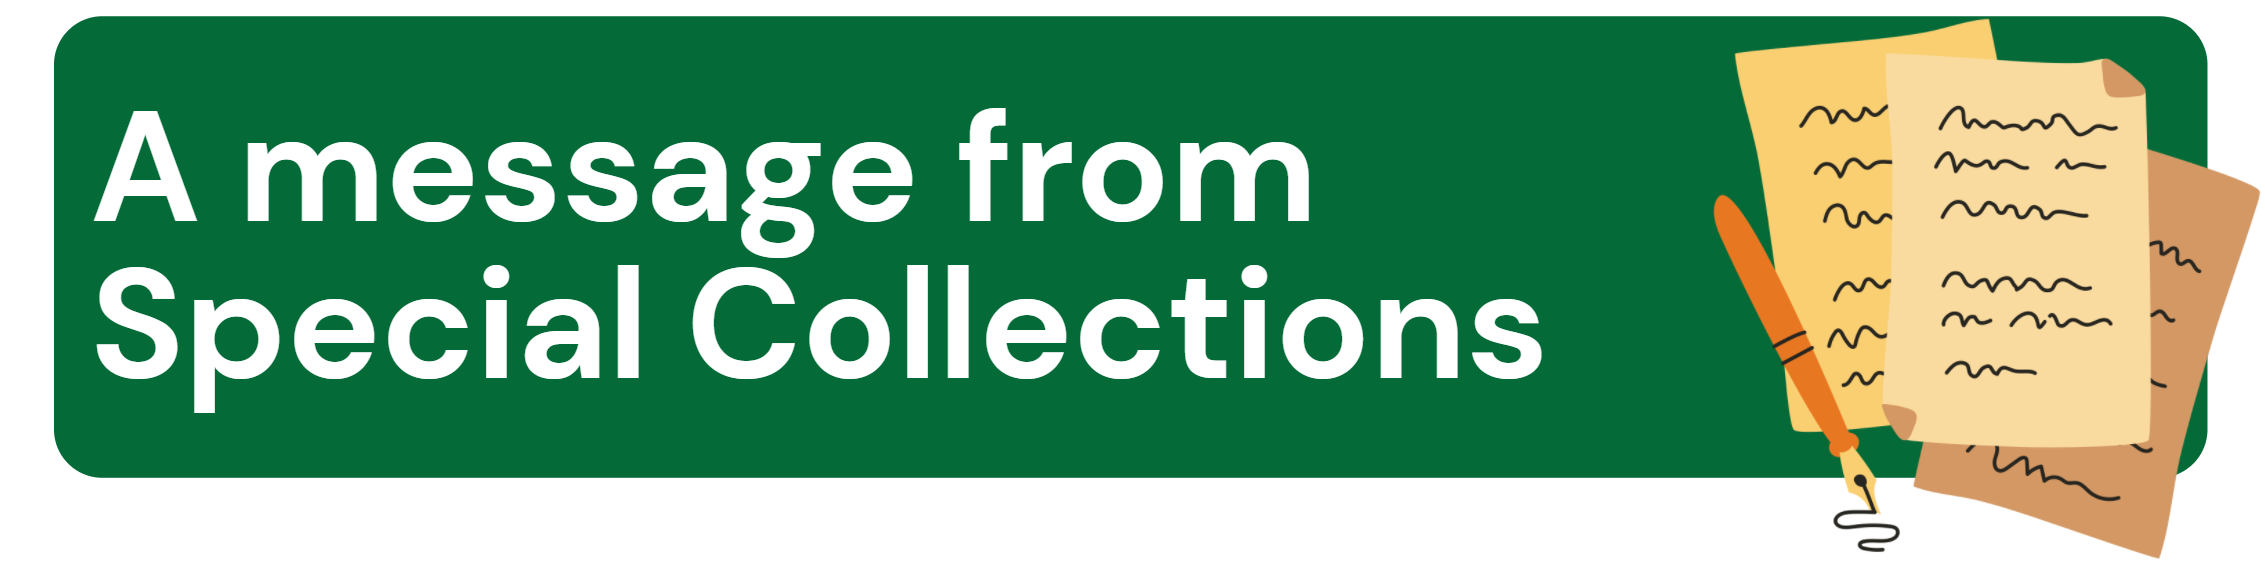 A message from Special Collections (white font on green background). Clipart old-looking documents with a fancy pen.